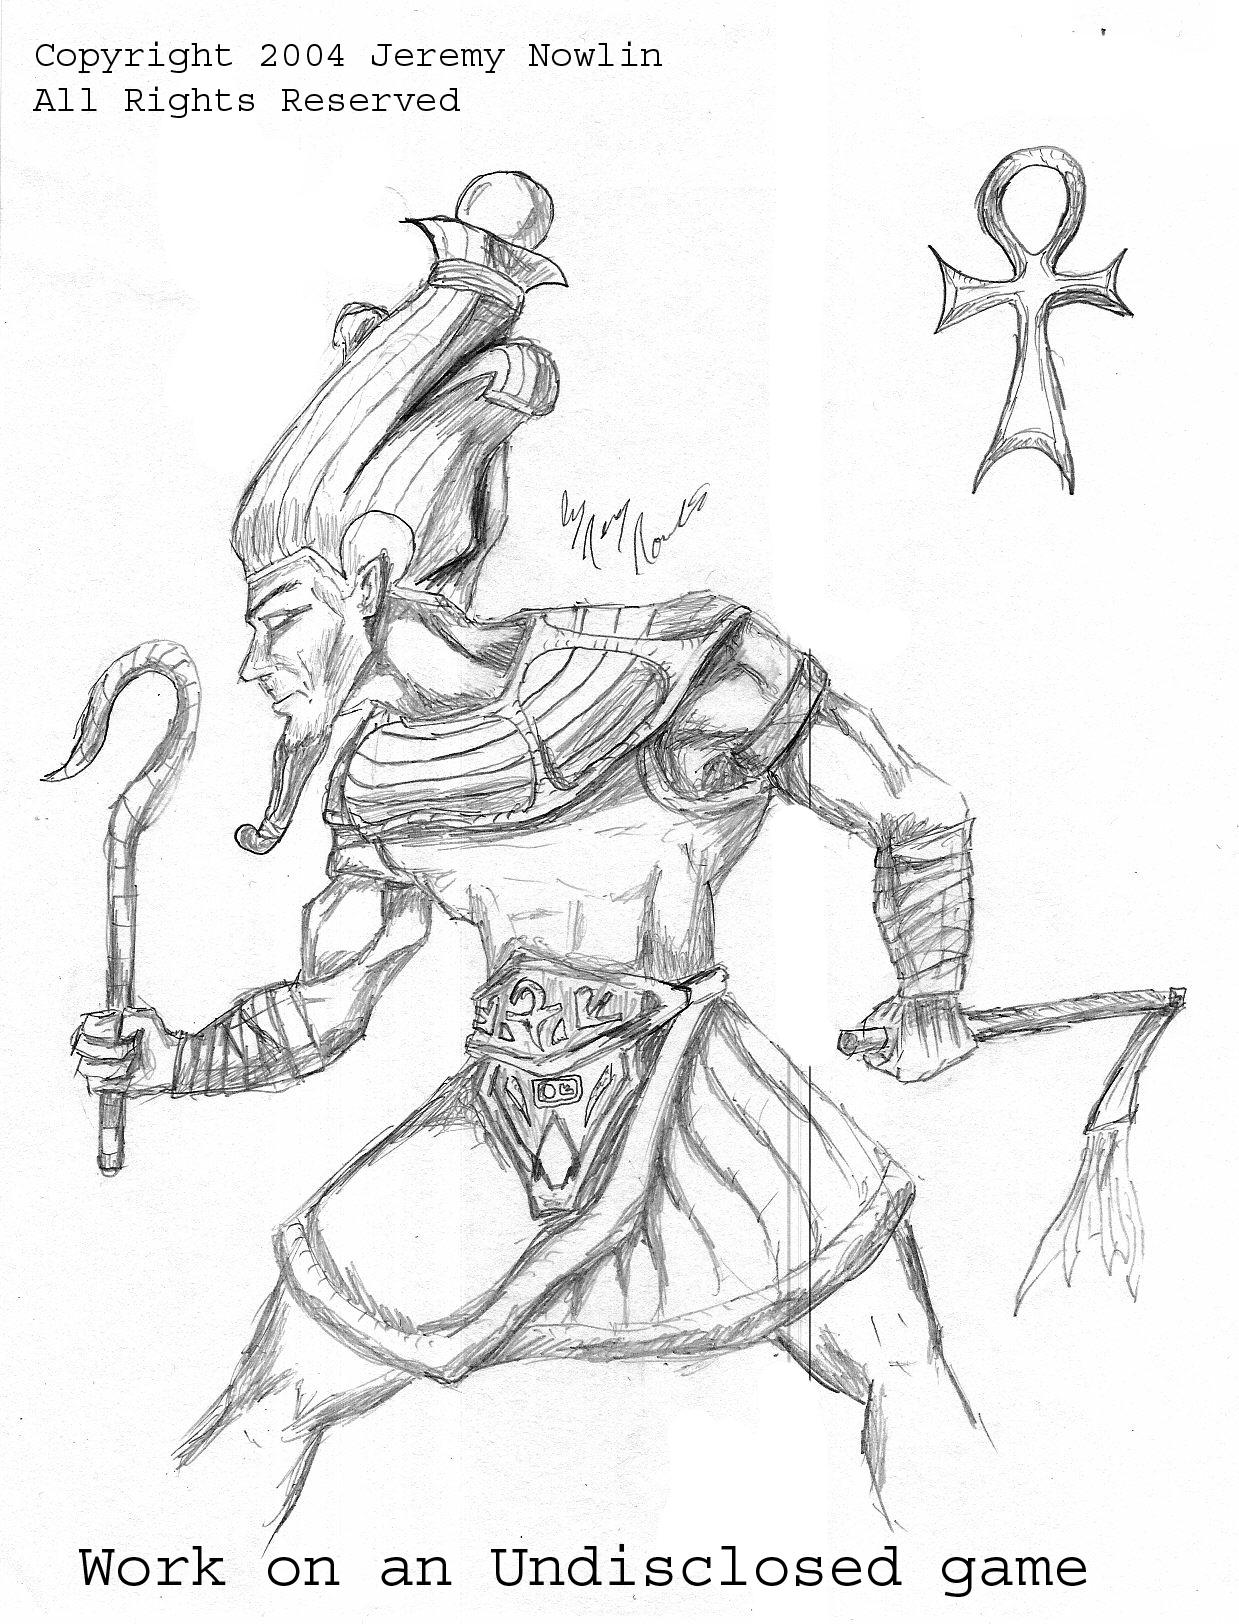 Egyptian God Osiris by JerryN on DeviantArt